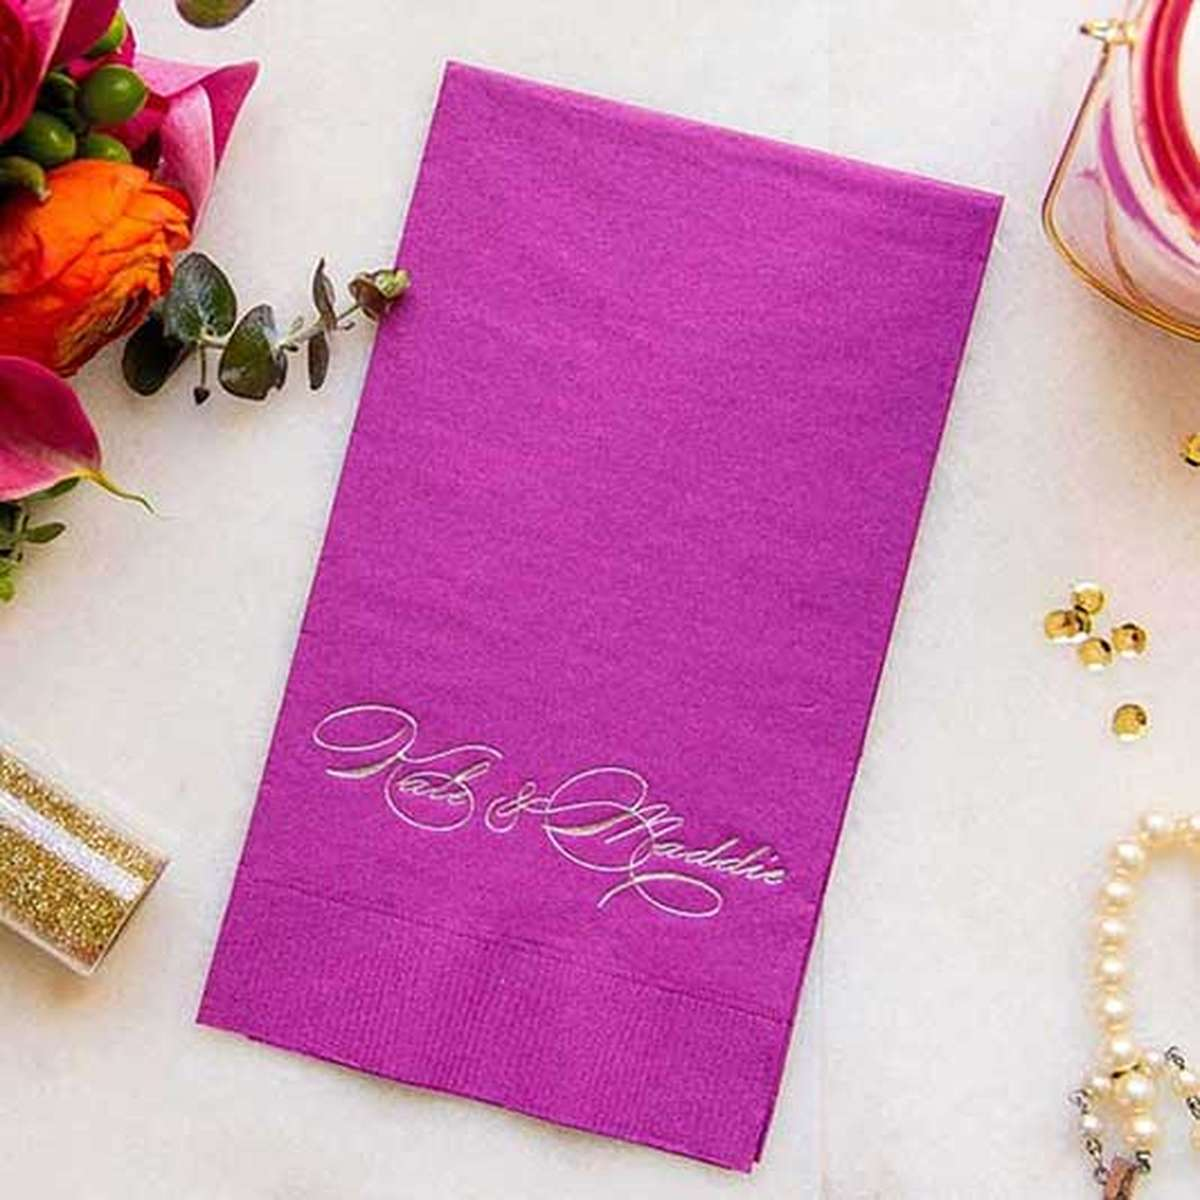 personalized guest towel napkin